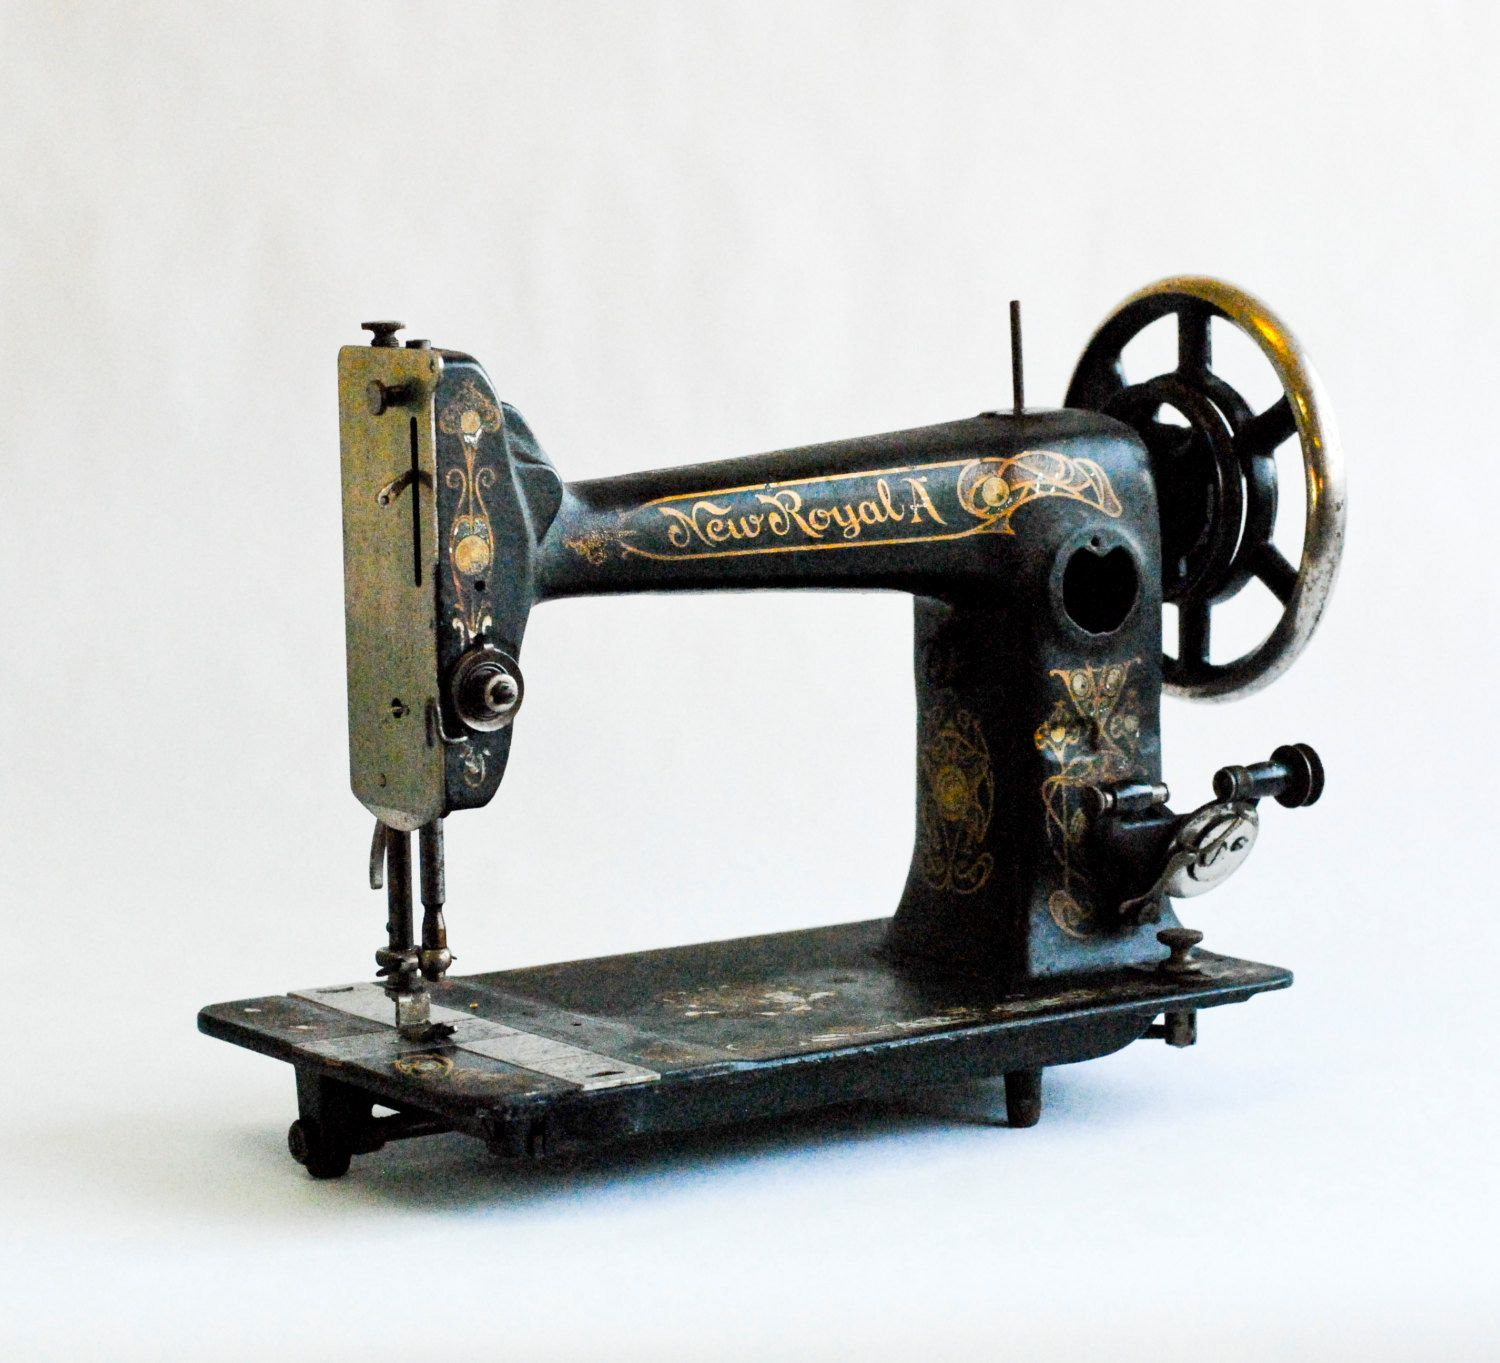 antique old vintage sewing machine for interior design 1896 new royal a treadle sewing machine. Black Bedroom Furniture Sets. Home Design Ideas